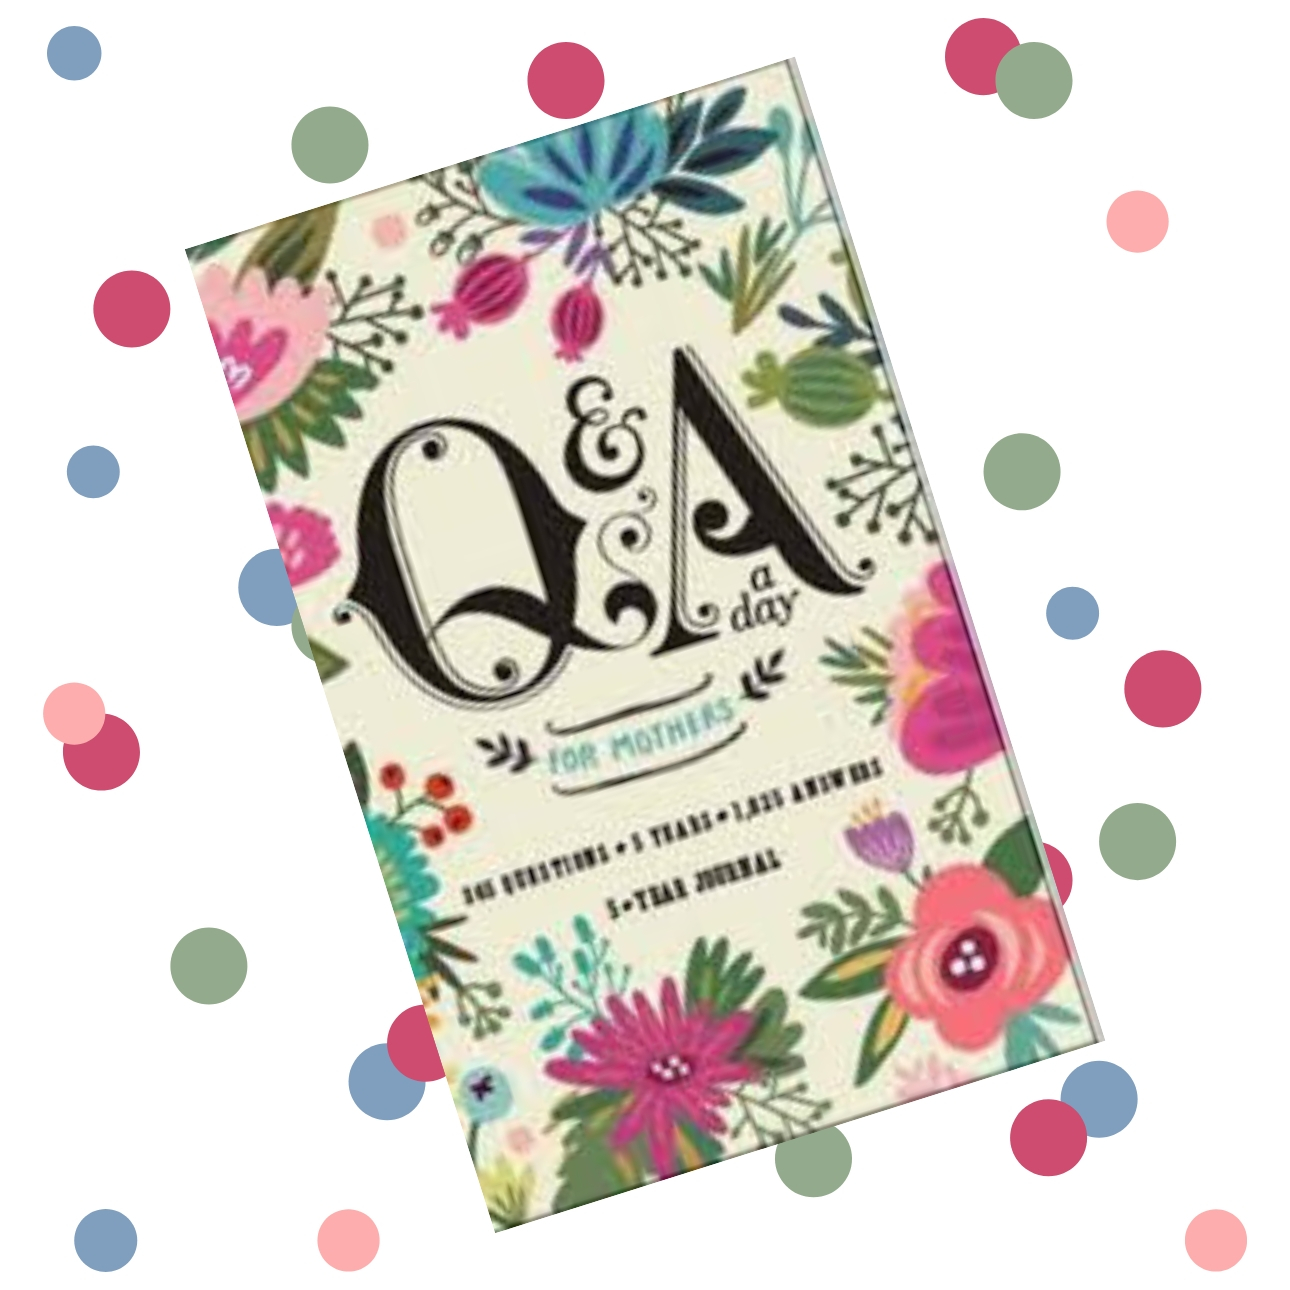 dagboeken wishlist - q&a a day for mothers